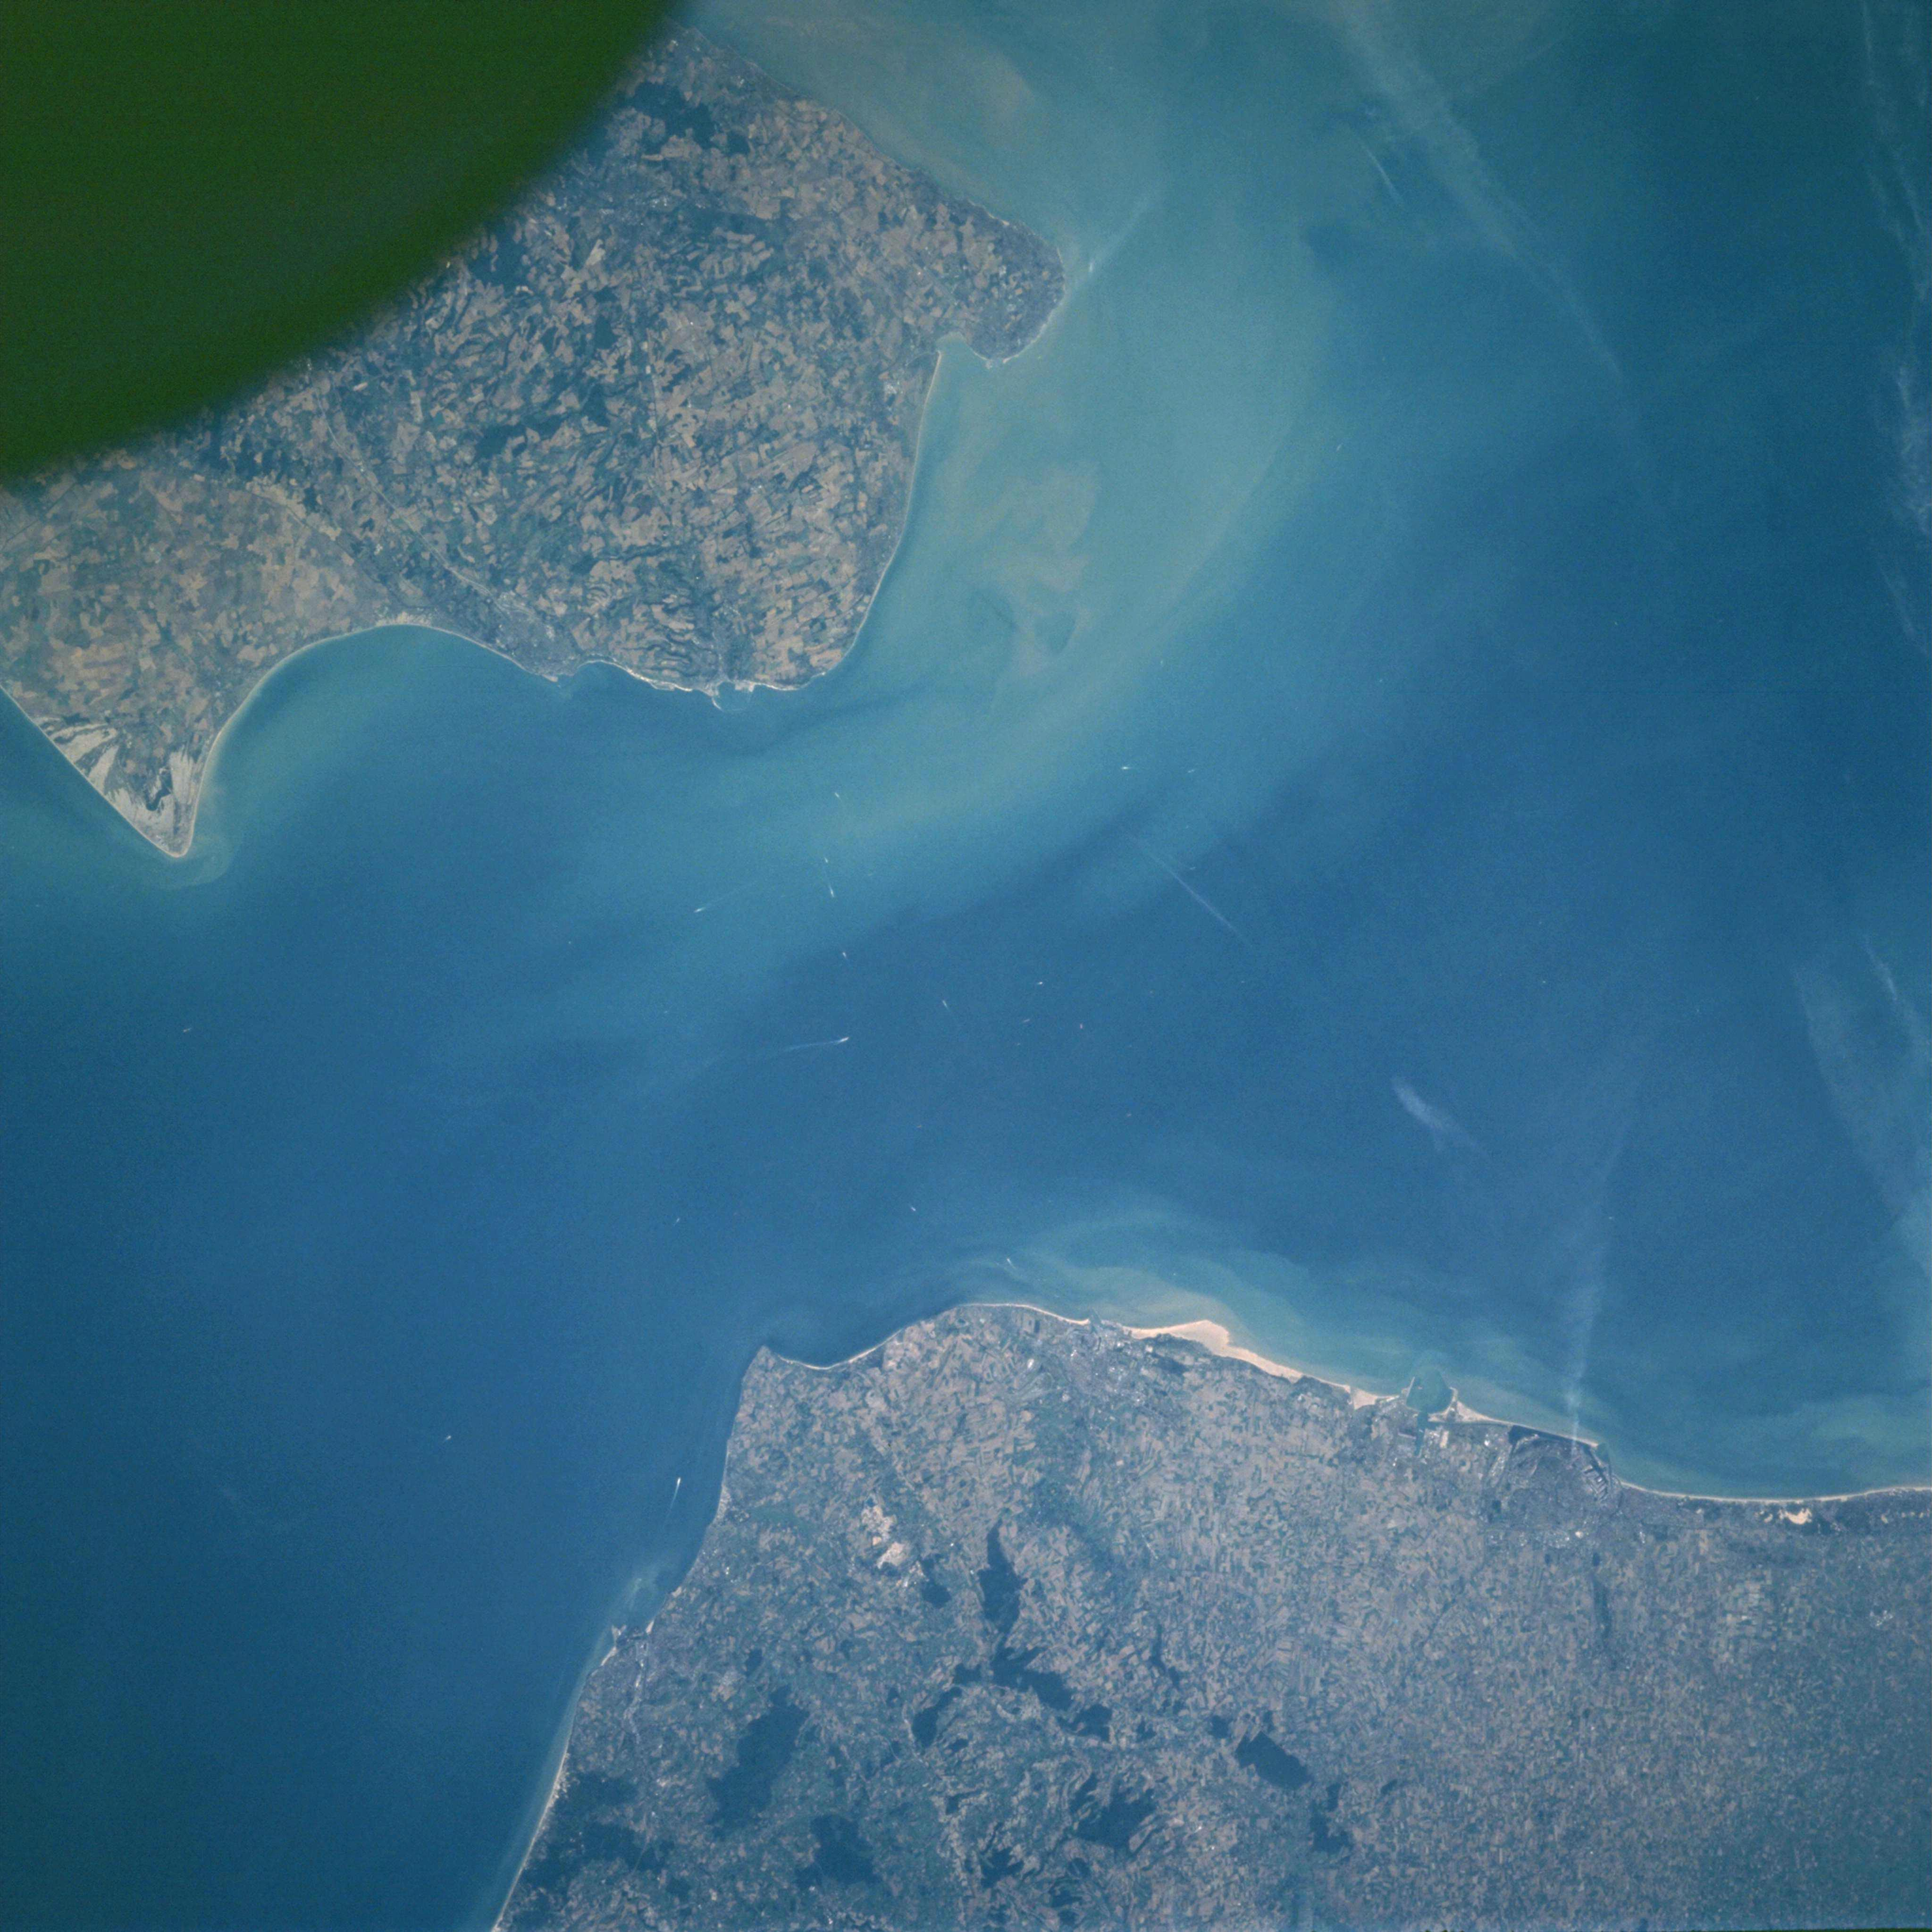 Strait of dover STS106 718 28